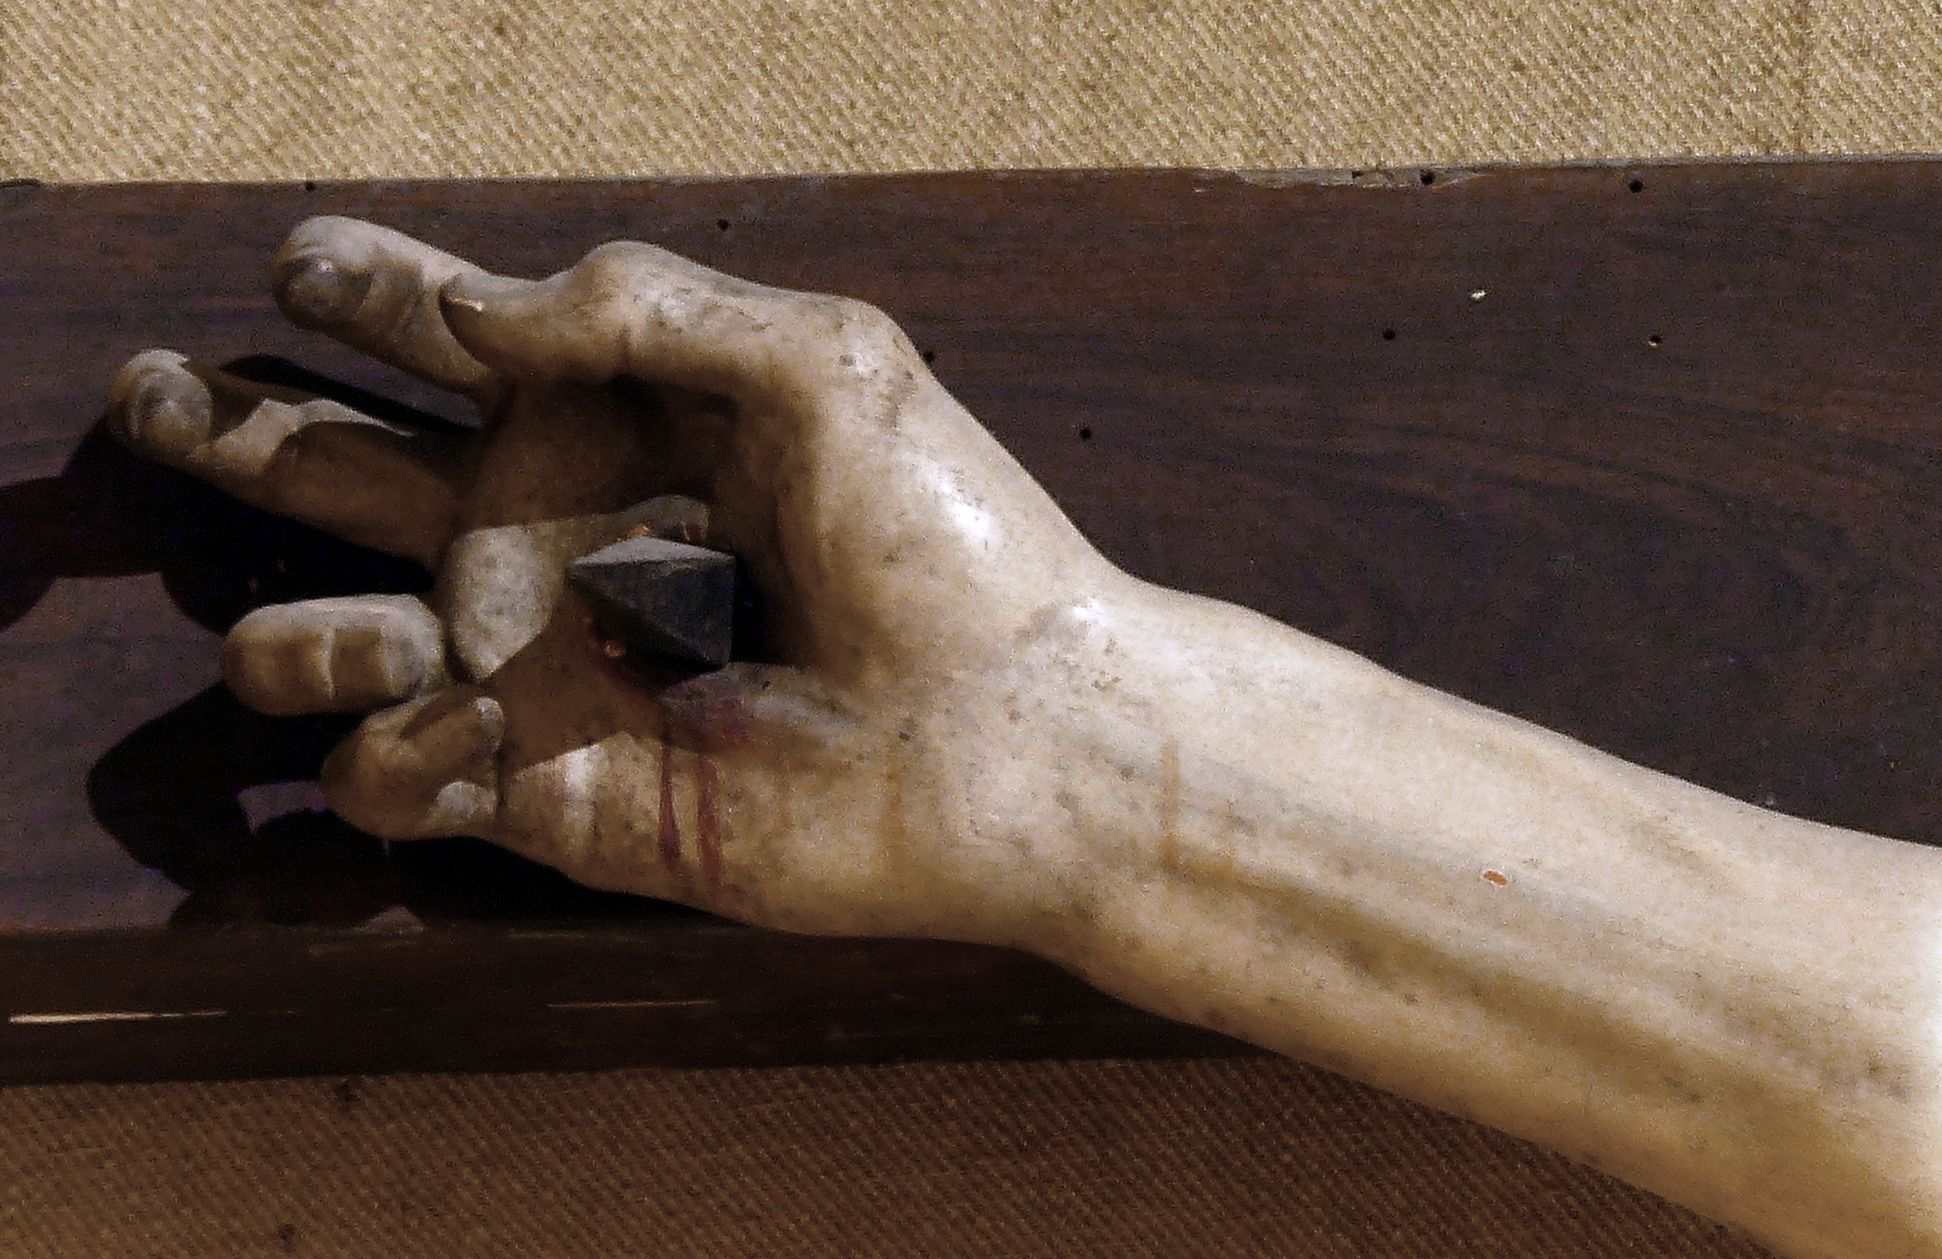 Crucifixus Jesus´s right hand pierced by a nail